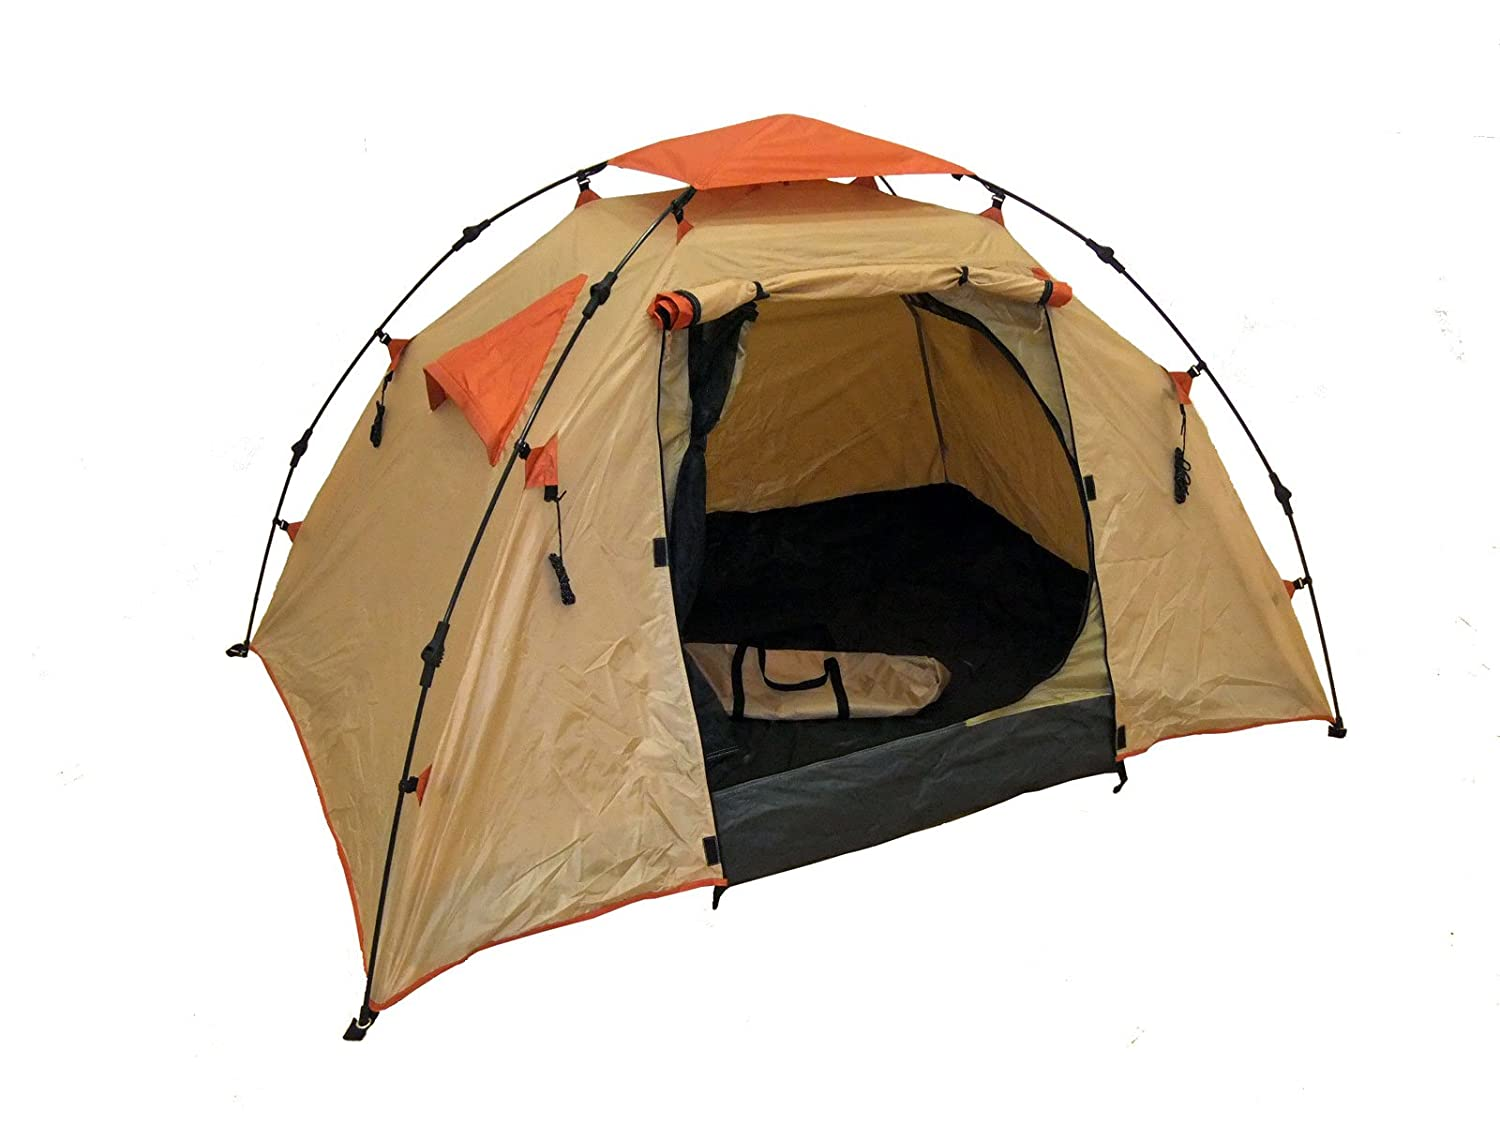 Amazon.com  Genji Sports Instant C&ing Tent (3 Person) Large Light Brown  Sports u0026 Outdoors  sc 1 st  Amazon.com & Amazon.com : Genji Sports Instant Camping Tent (3 Person) Large ...